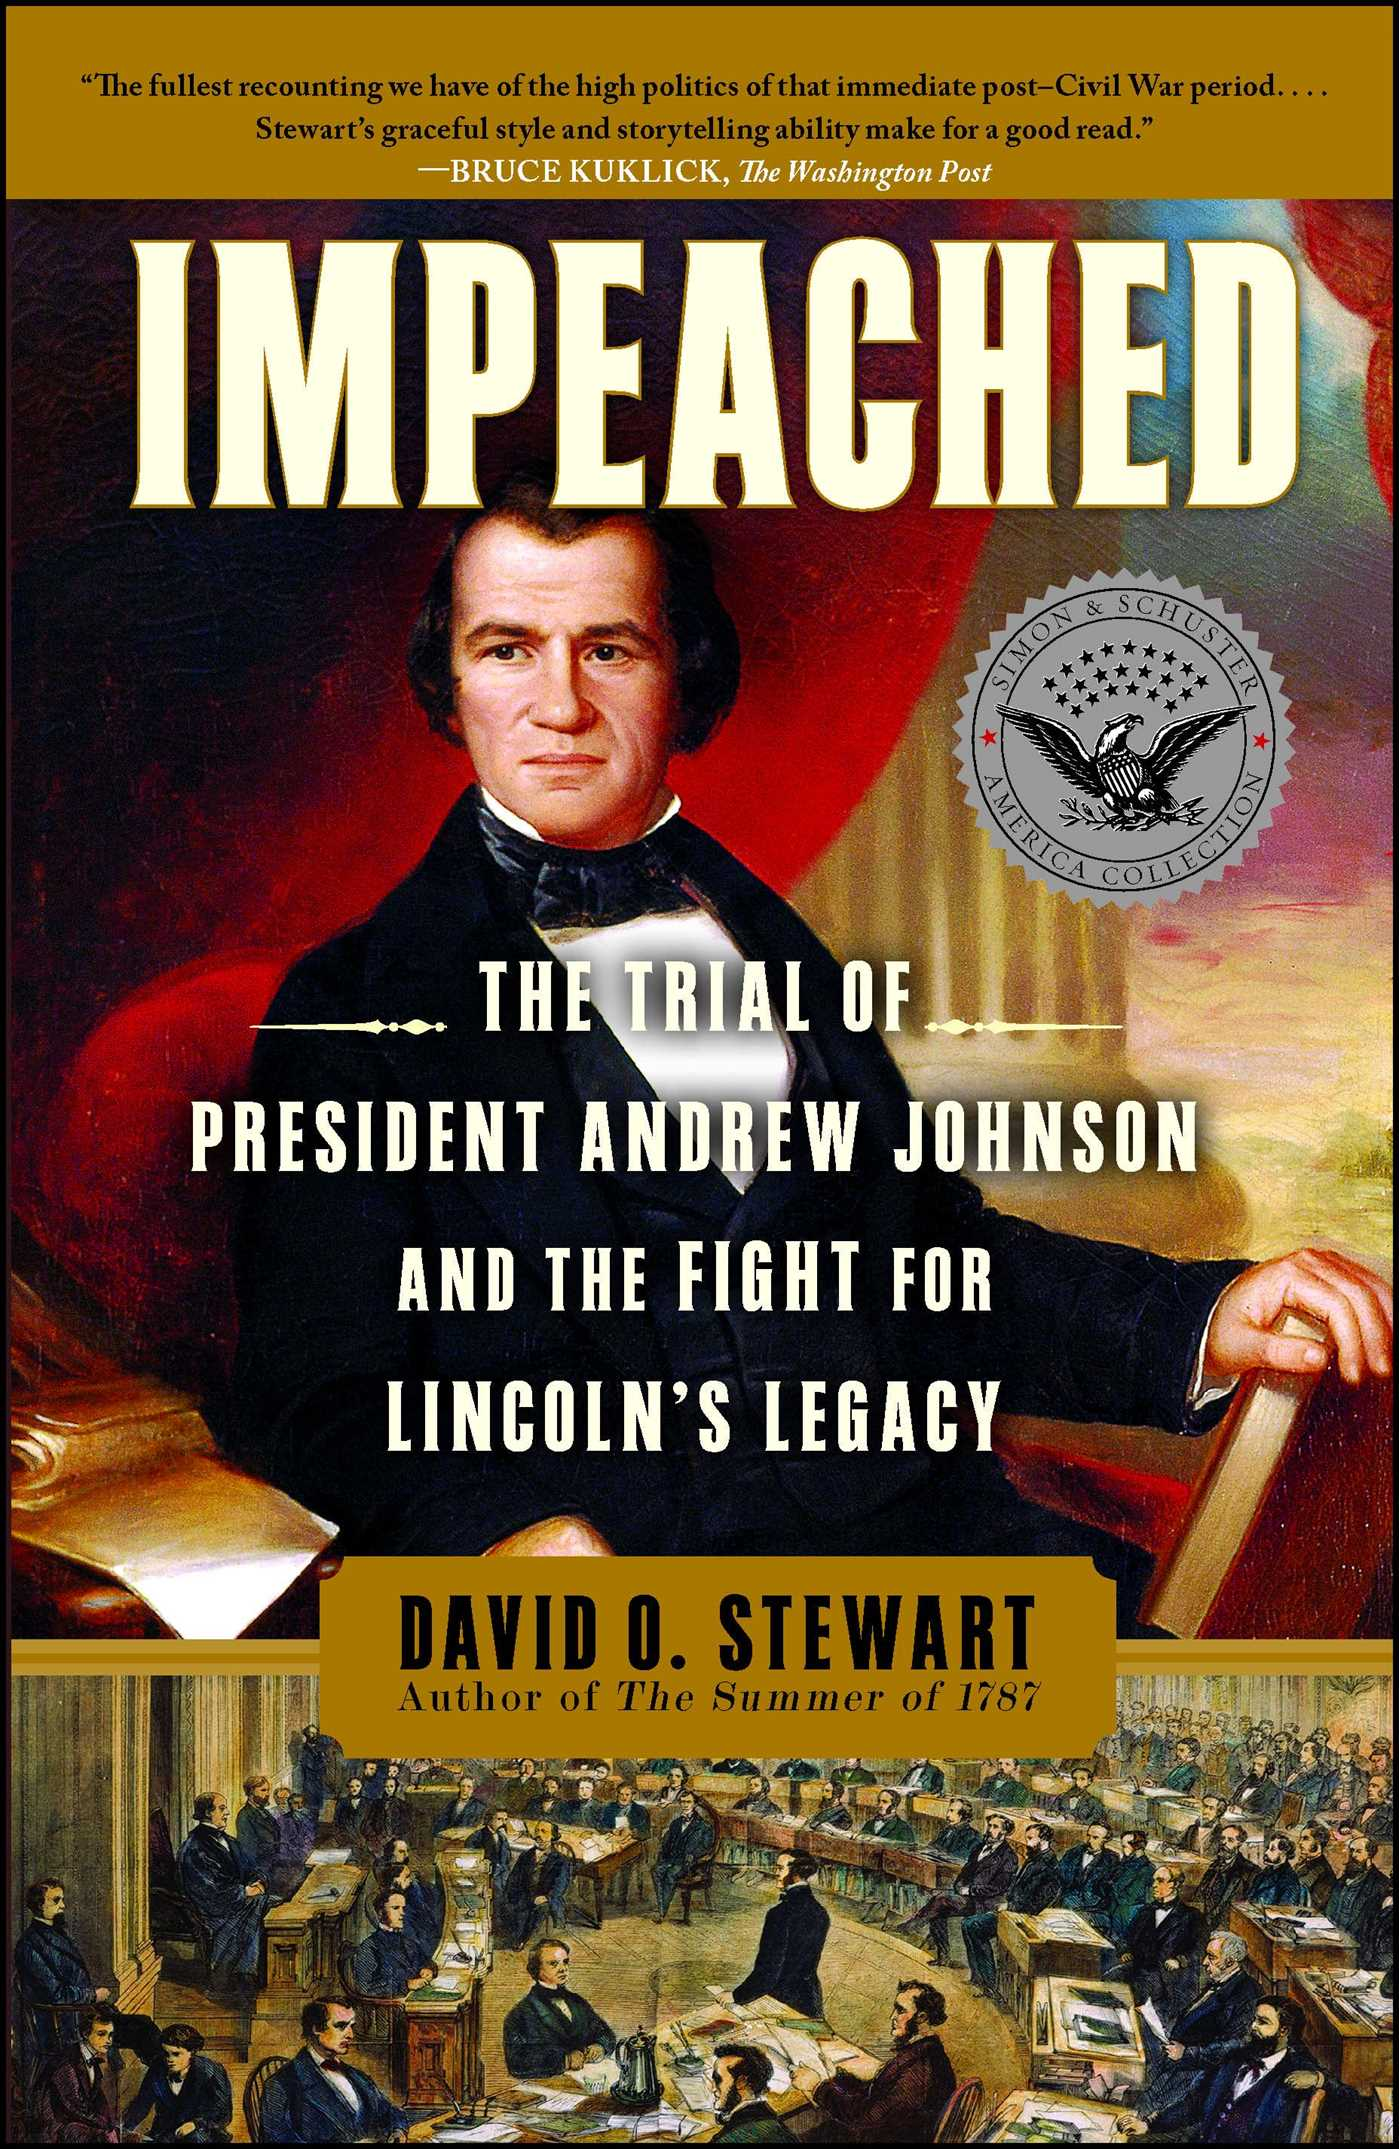 Impeached 9781439163320 hr